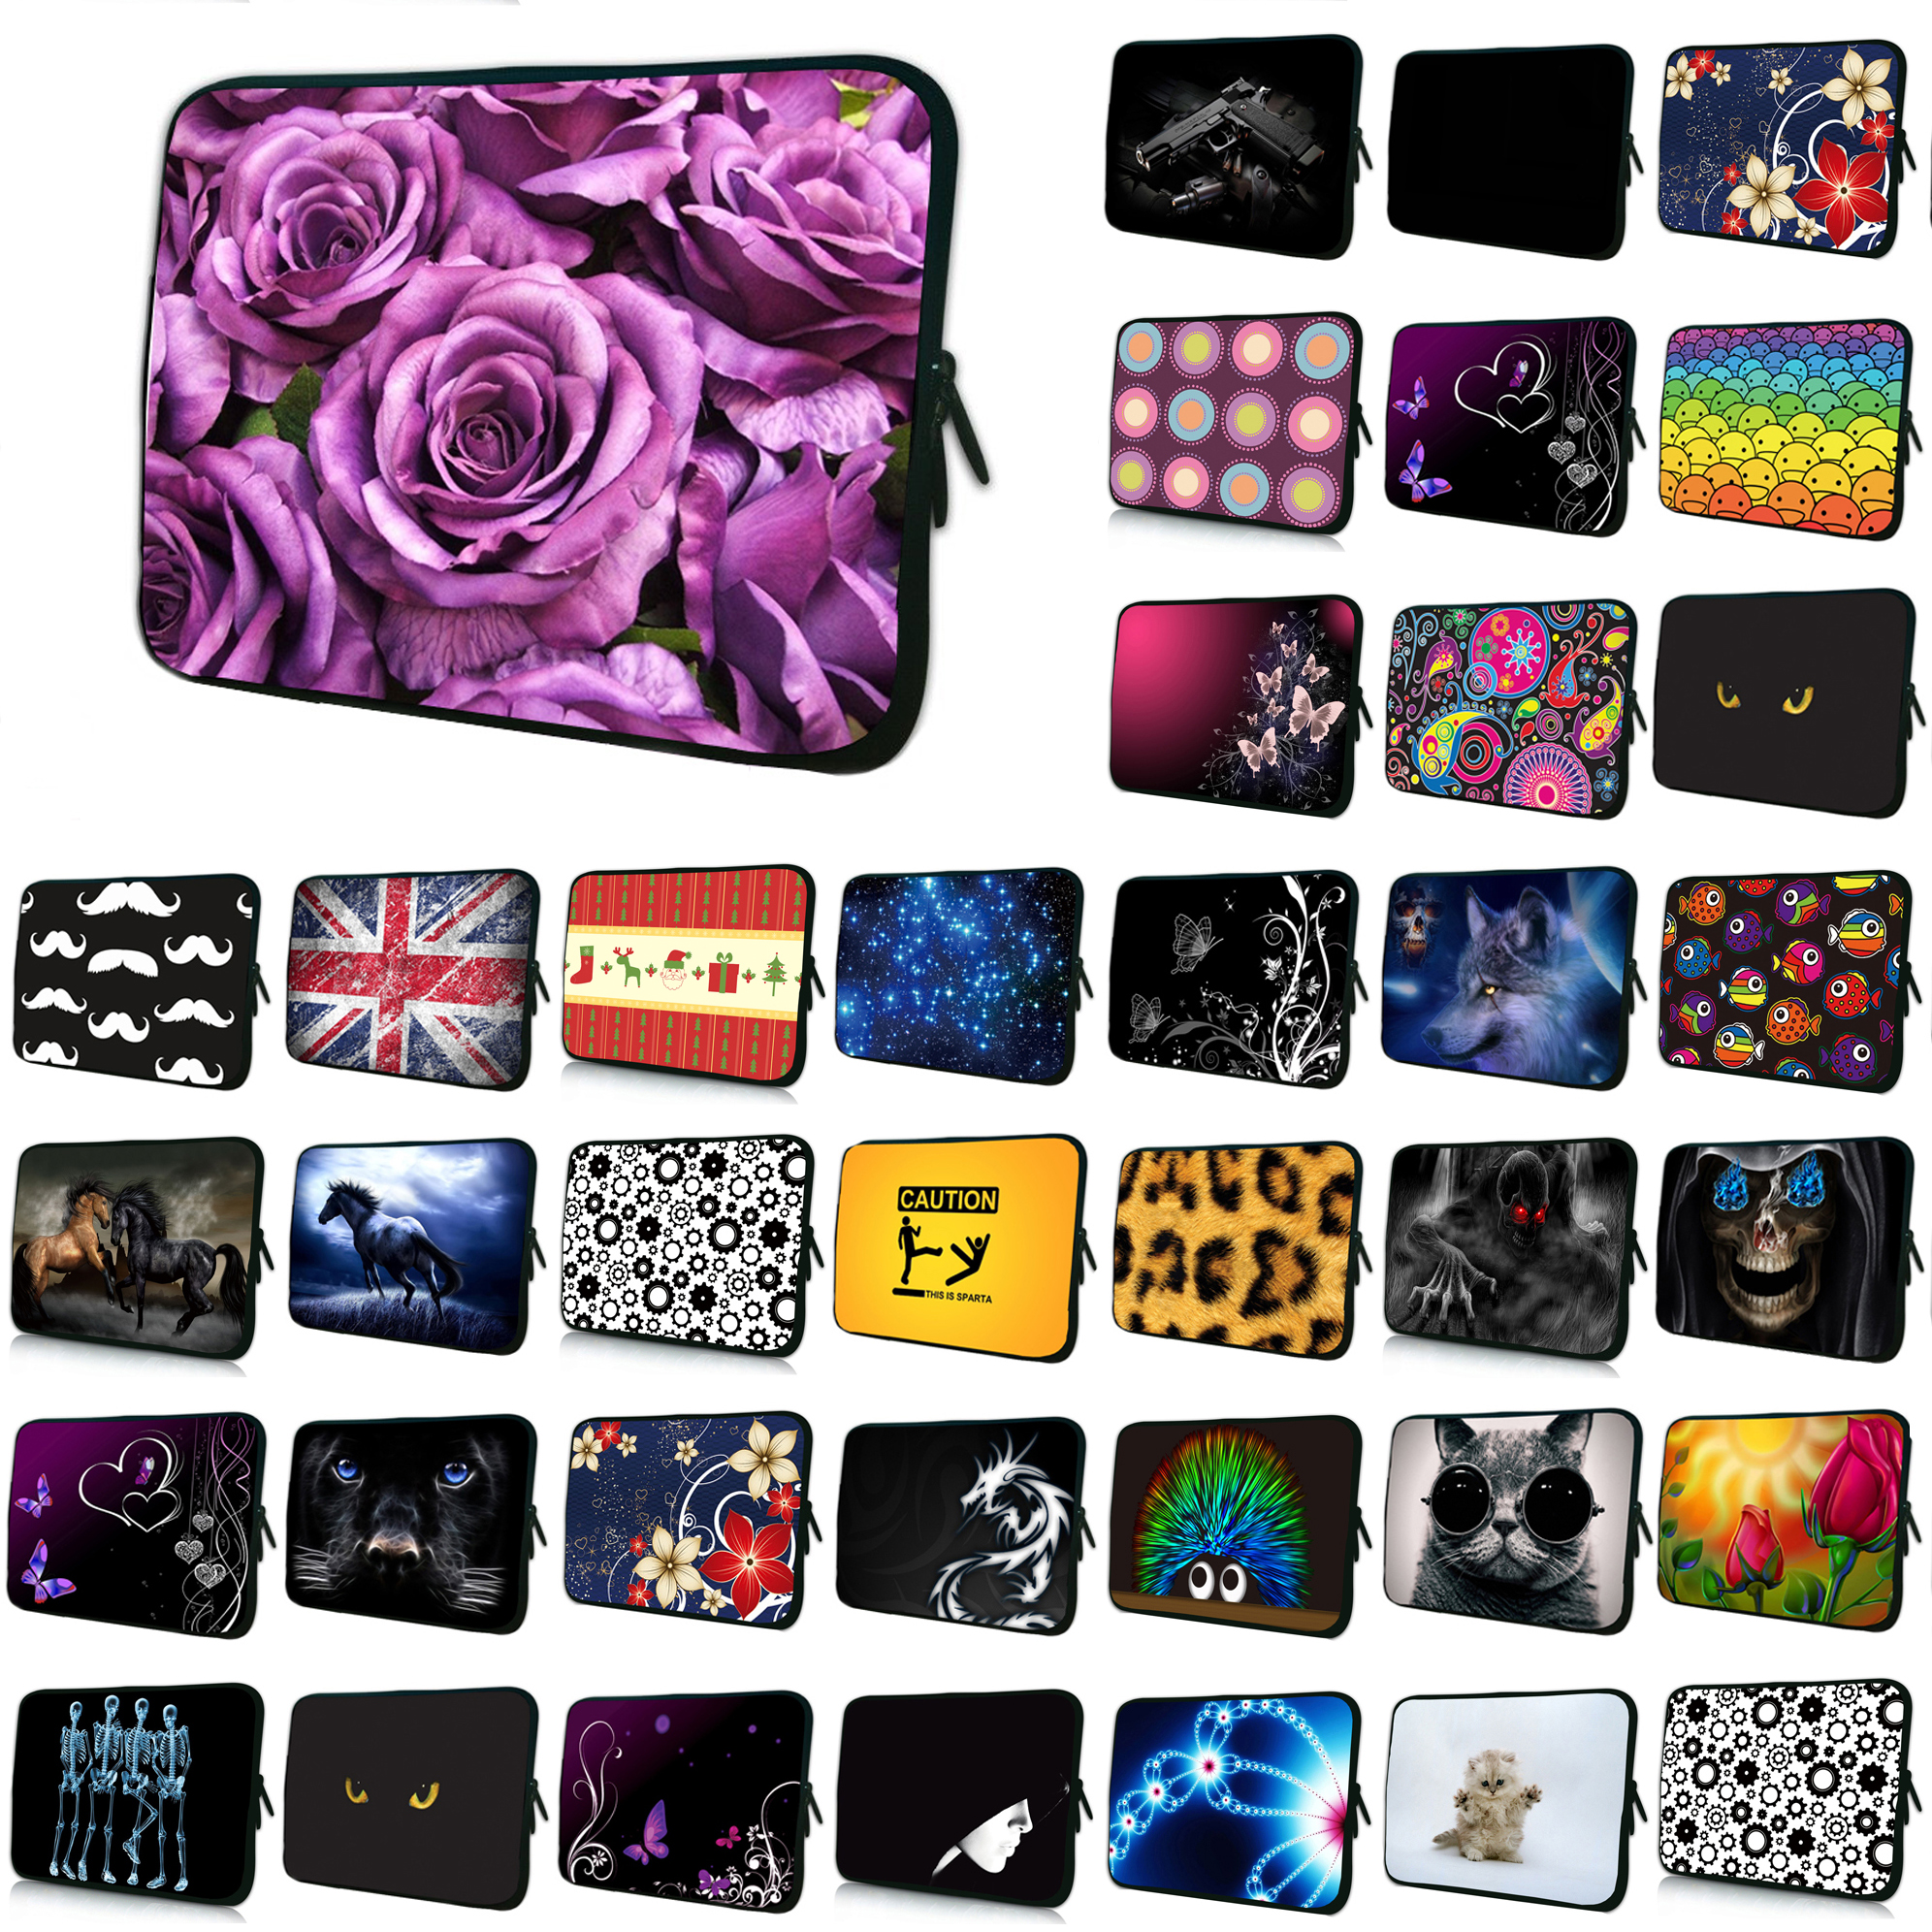 Floral Notebook 14 Anti-Scratch Neoprene Laptop Shell Cover Bags 14.1 14.4 Shockproof Inner Liner Pouch Cases Bag For Women